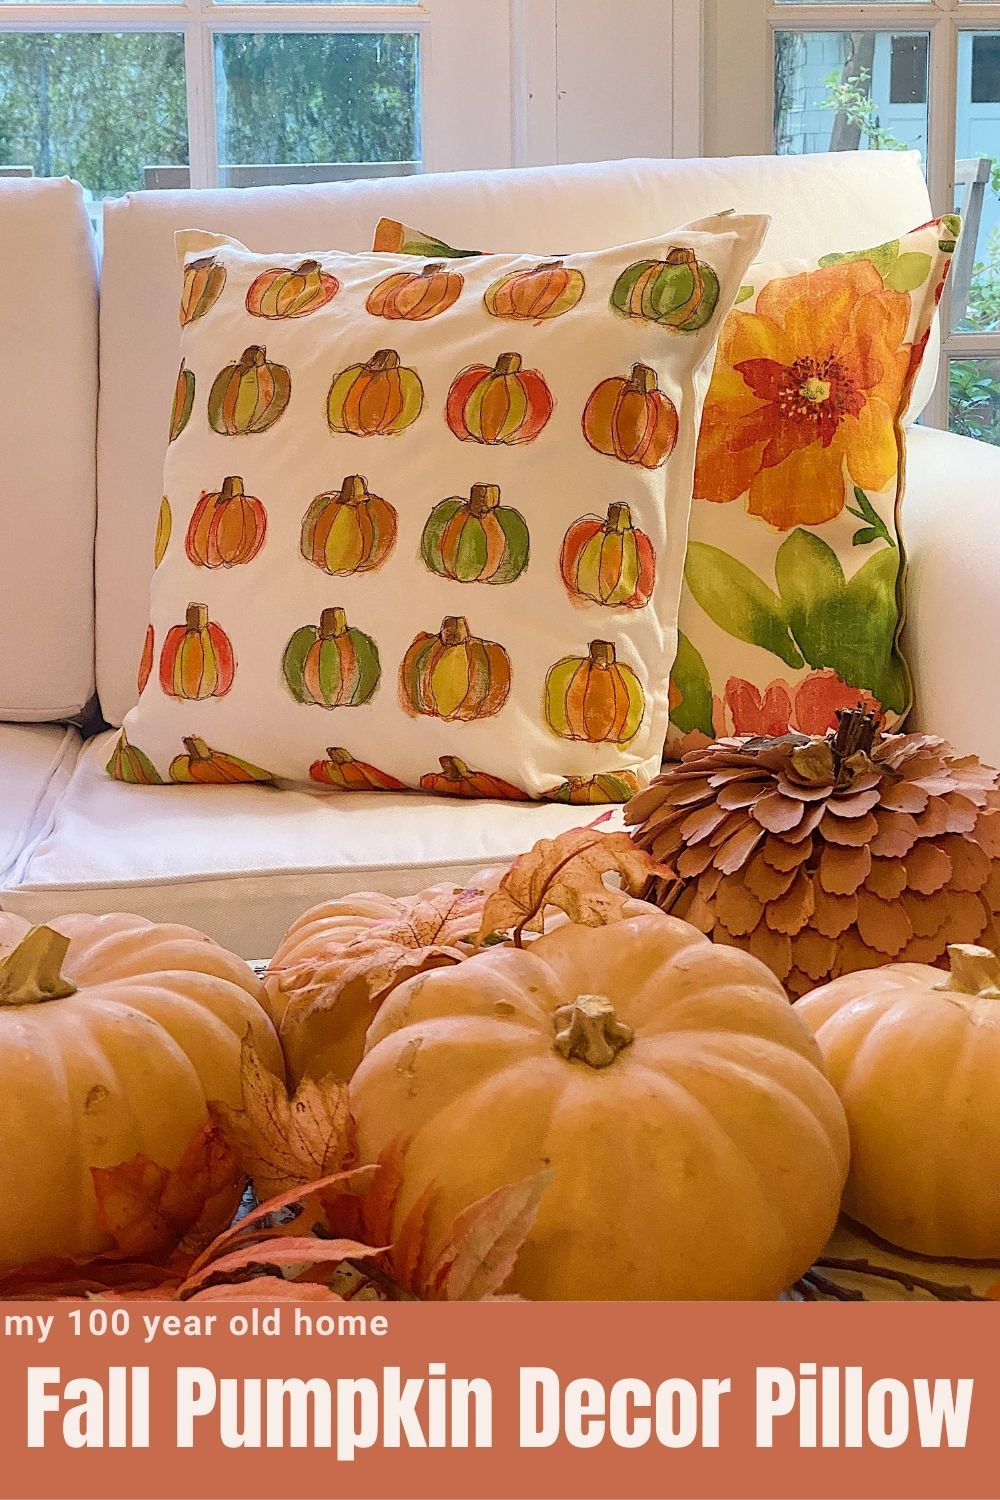 I love this pumpkin pillow and it's now one of my favorite fall pumpkin decor items. Who knew I could have so much fun making pumpkin crafts!